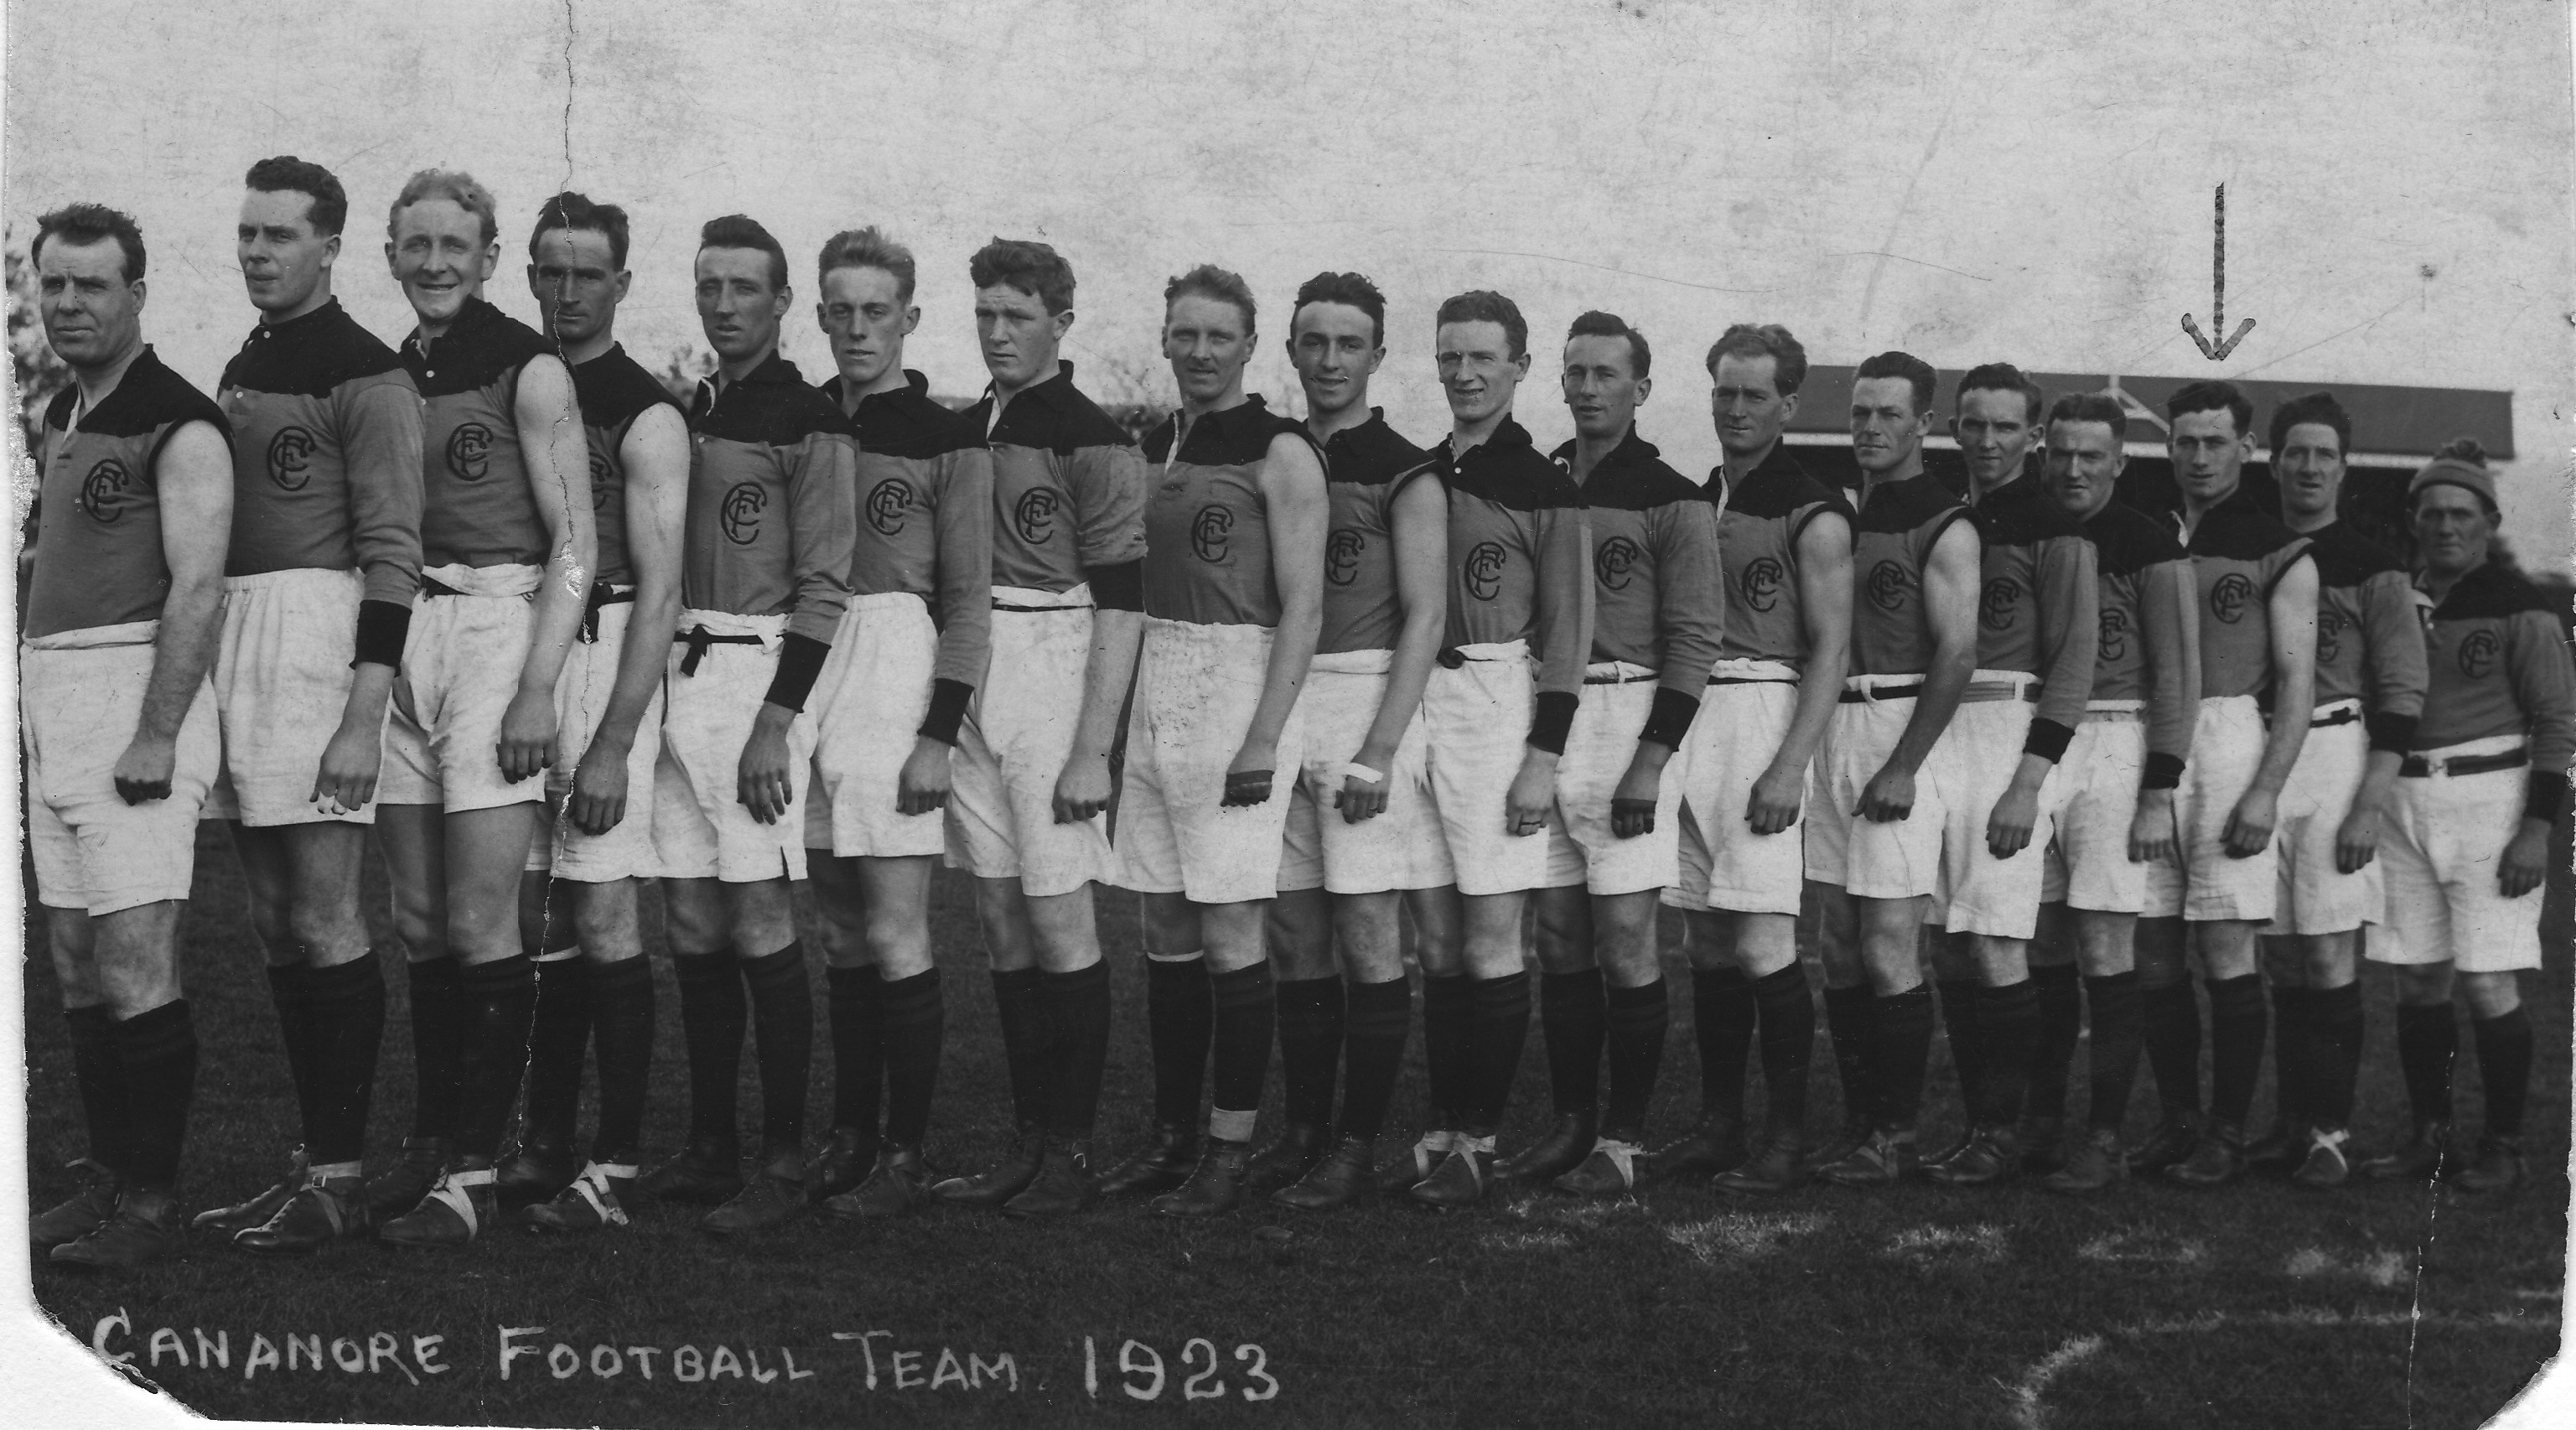 File:Cananore Football Team (1923).jpeg